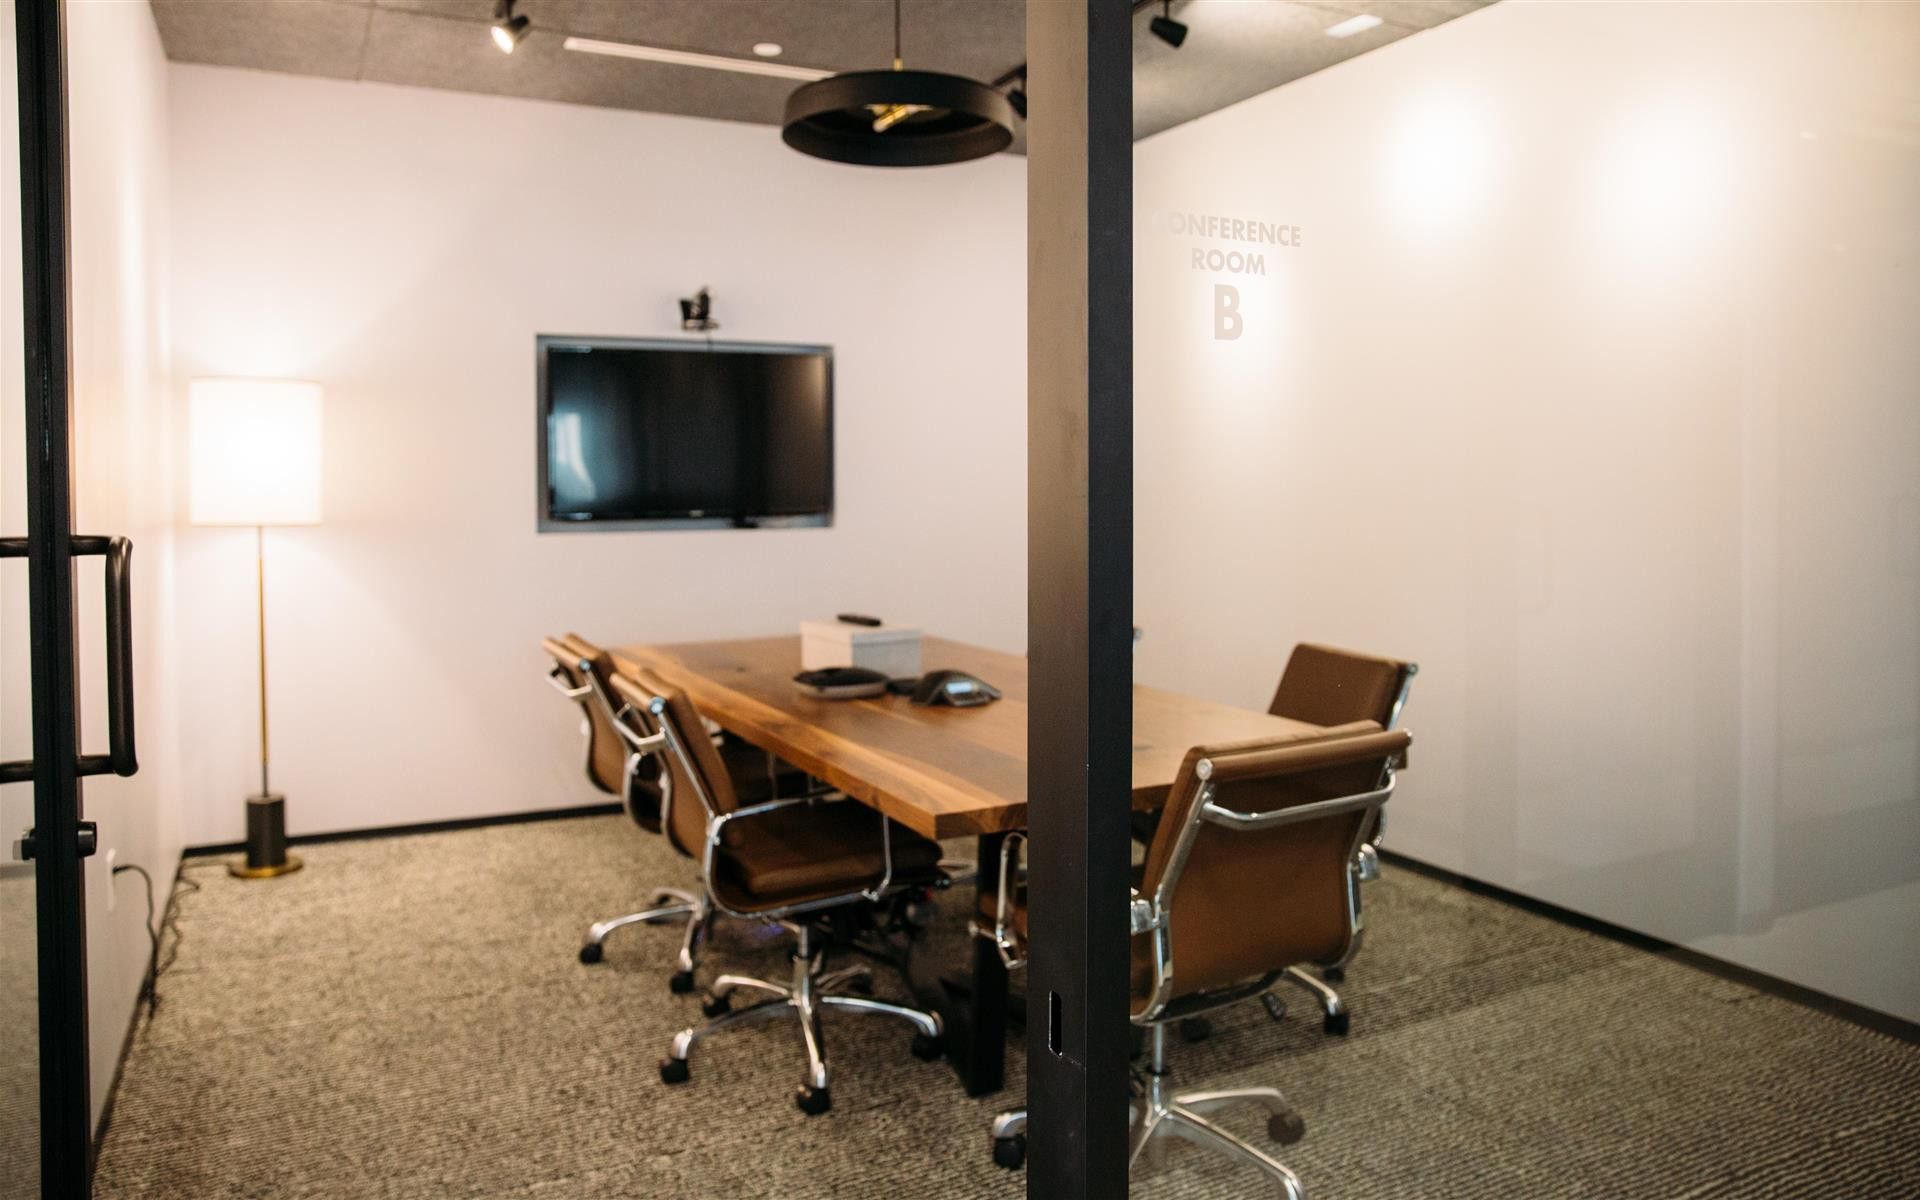 Industrious Los Angeles - Conference Room B